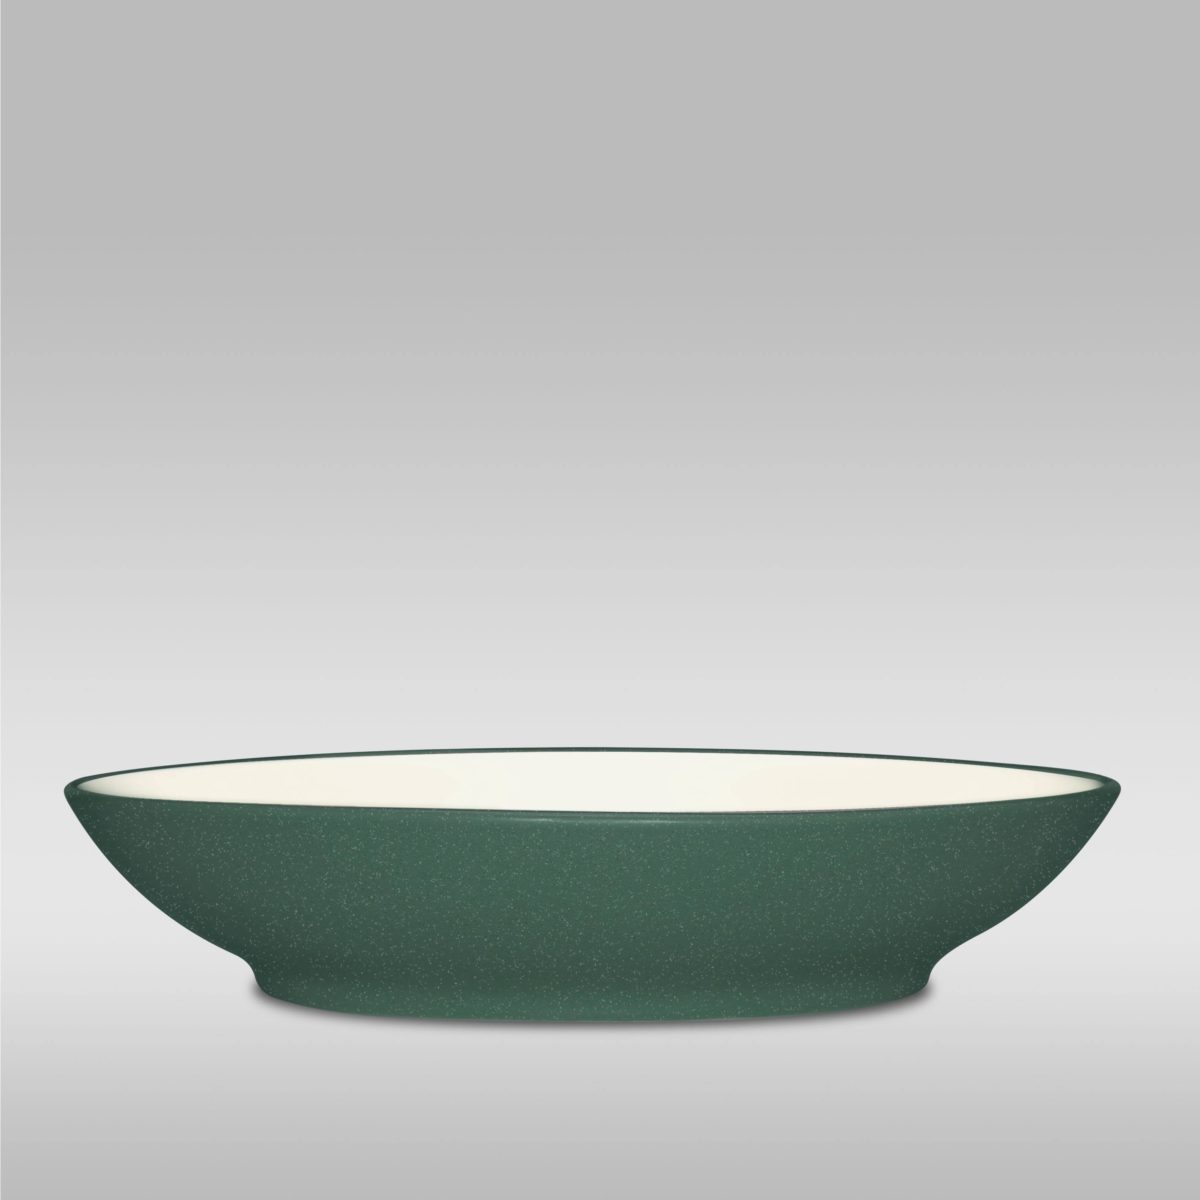 Noritake Colorwave Spruce Coupe Pasta Bowl